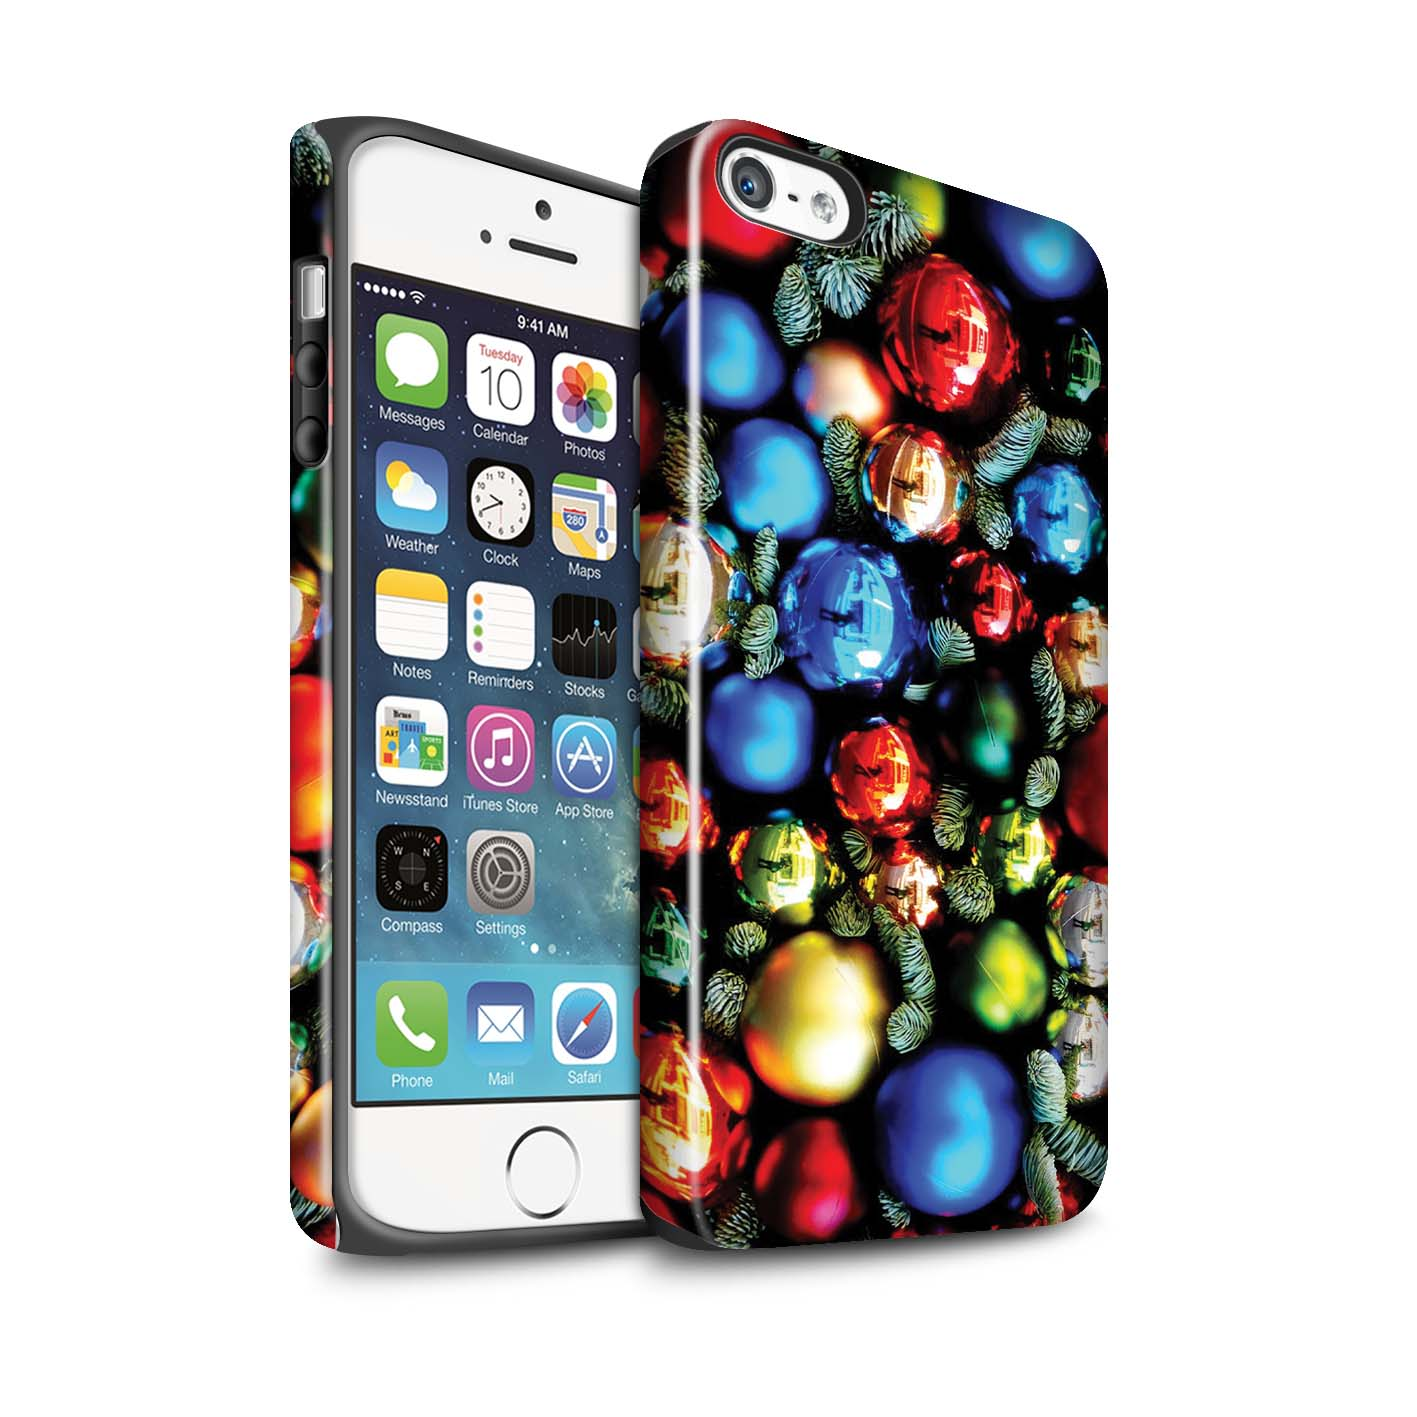 Robuste-Brillant-Antichoc-Etui-STUFF4-pour-Apple-iPhone-SE-Photo-de-Noel